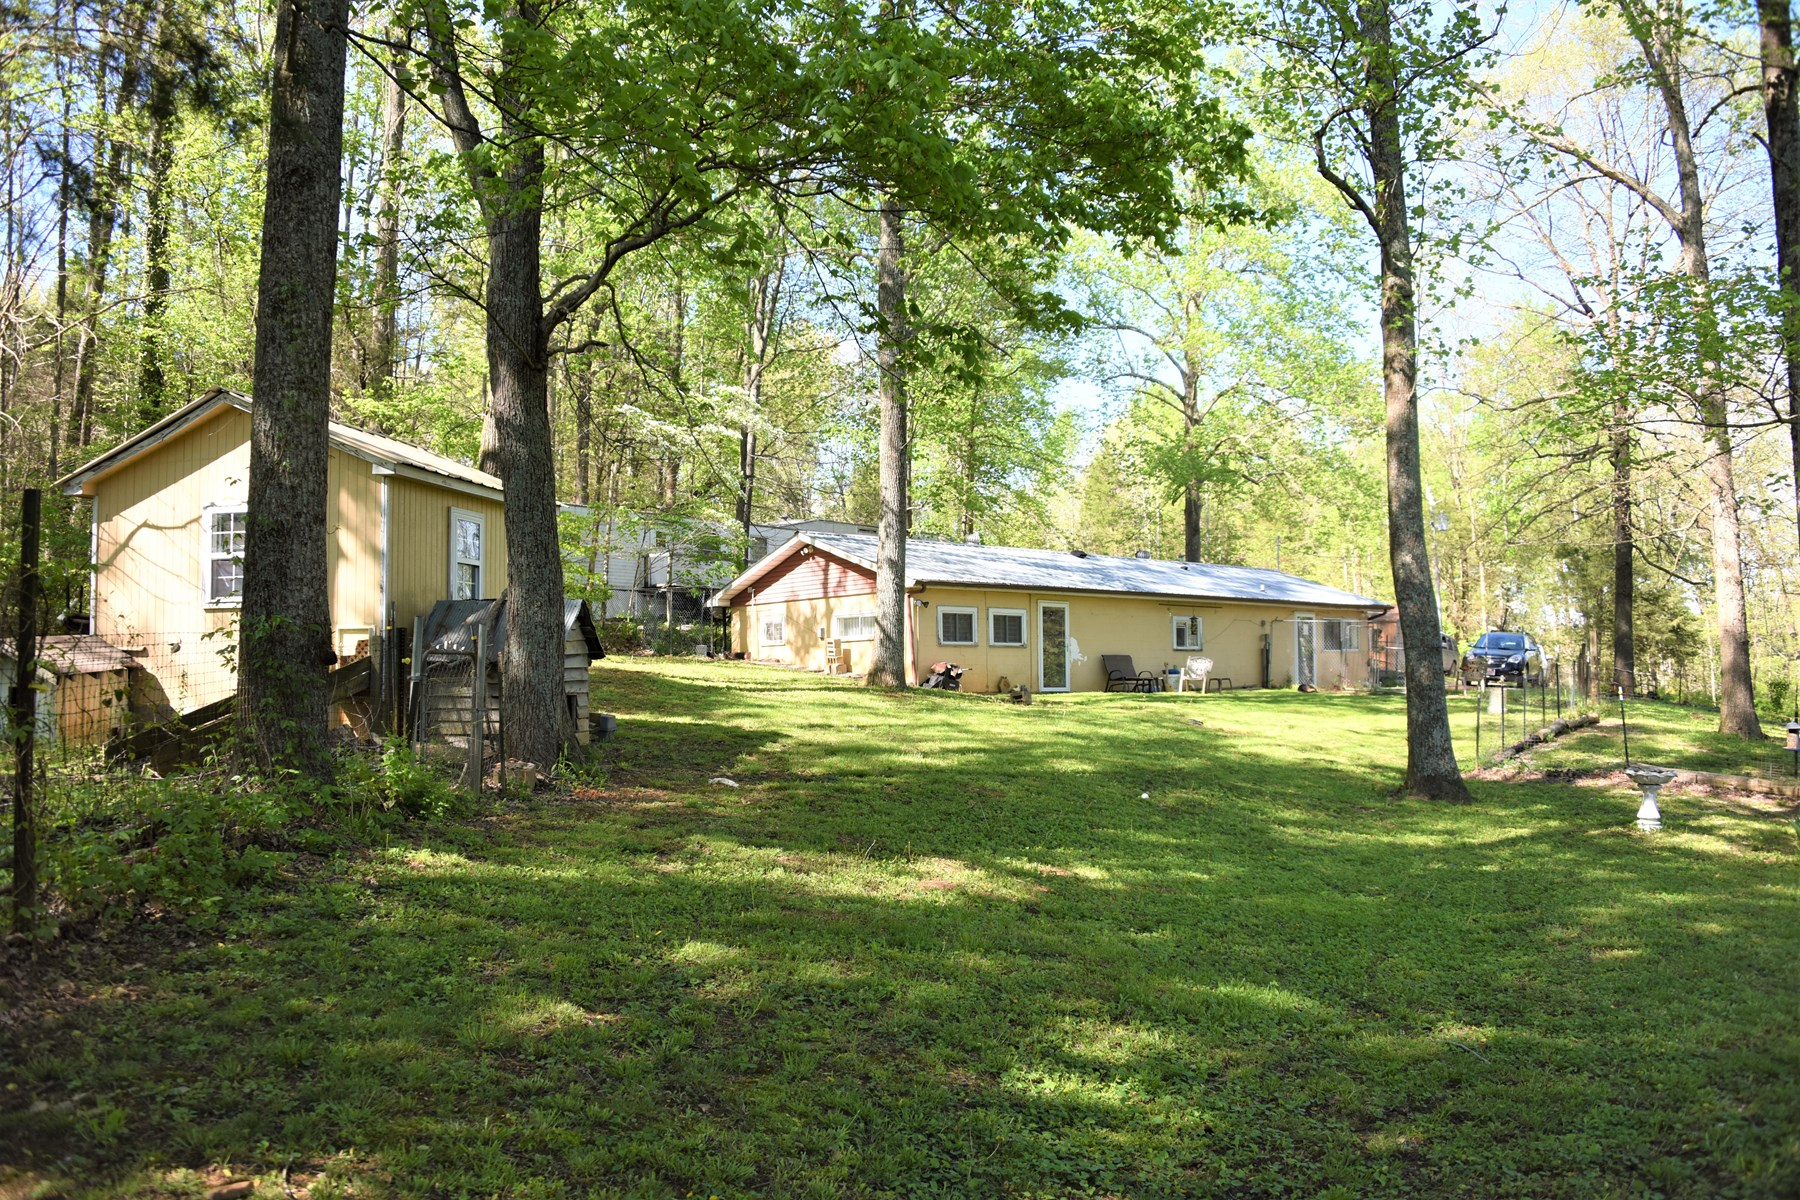 Home or Hunting Cabin, 28.78 ac, Woods, Pasture, Other Sites